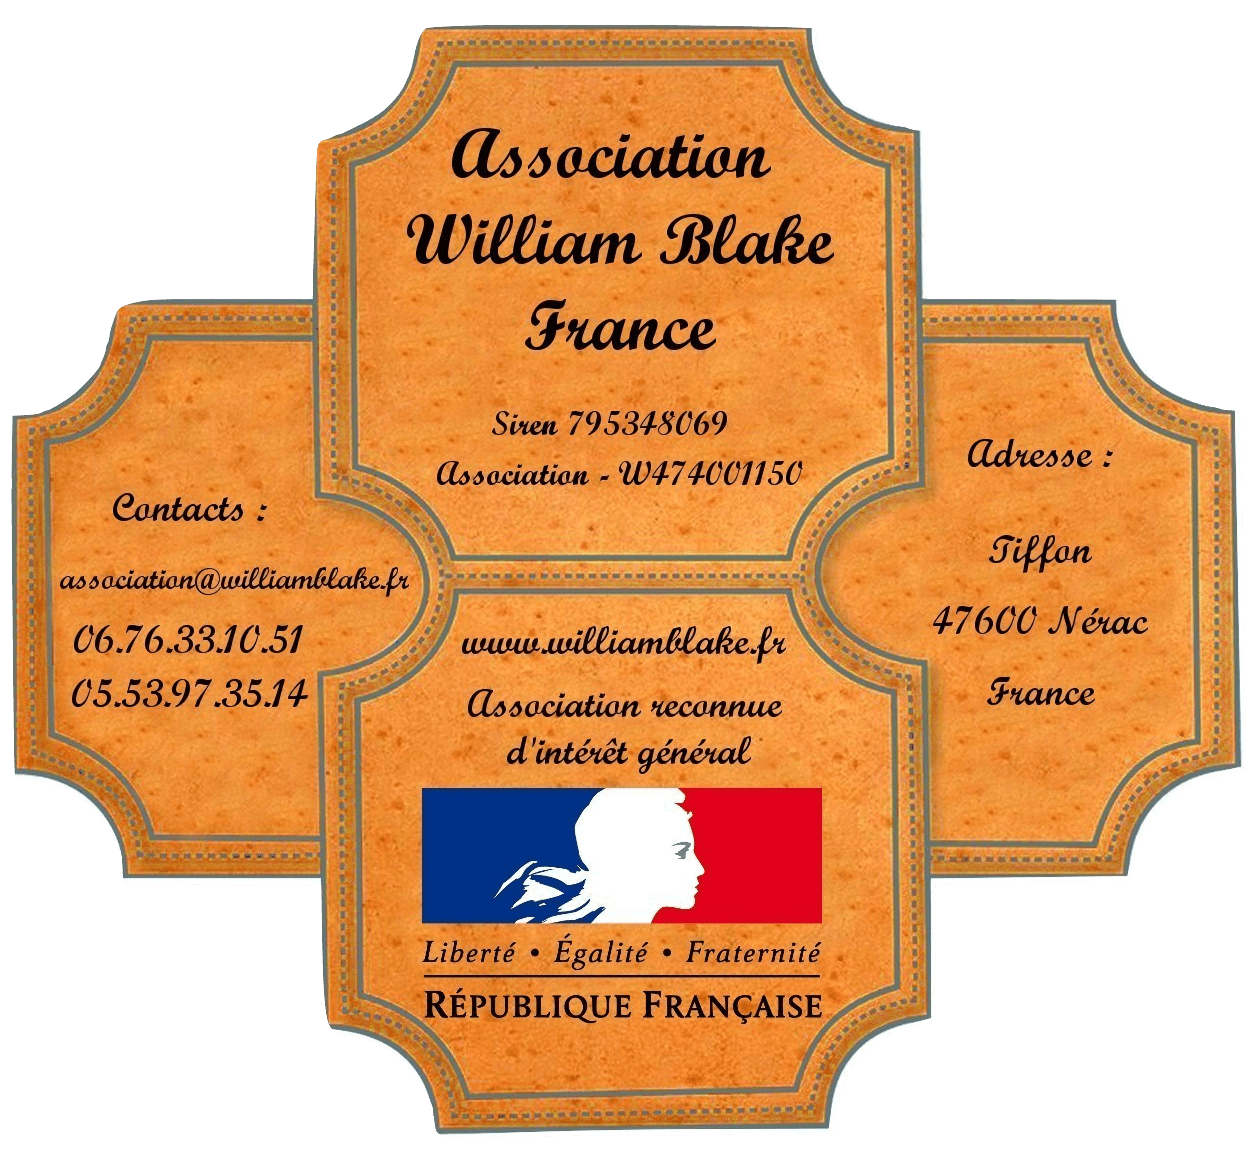 William Blake France